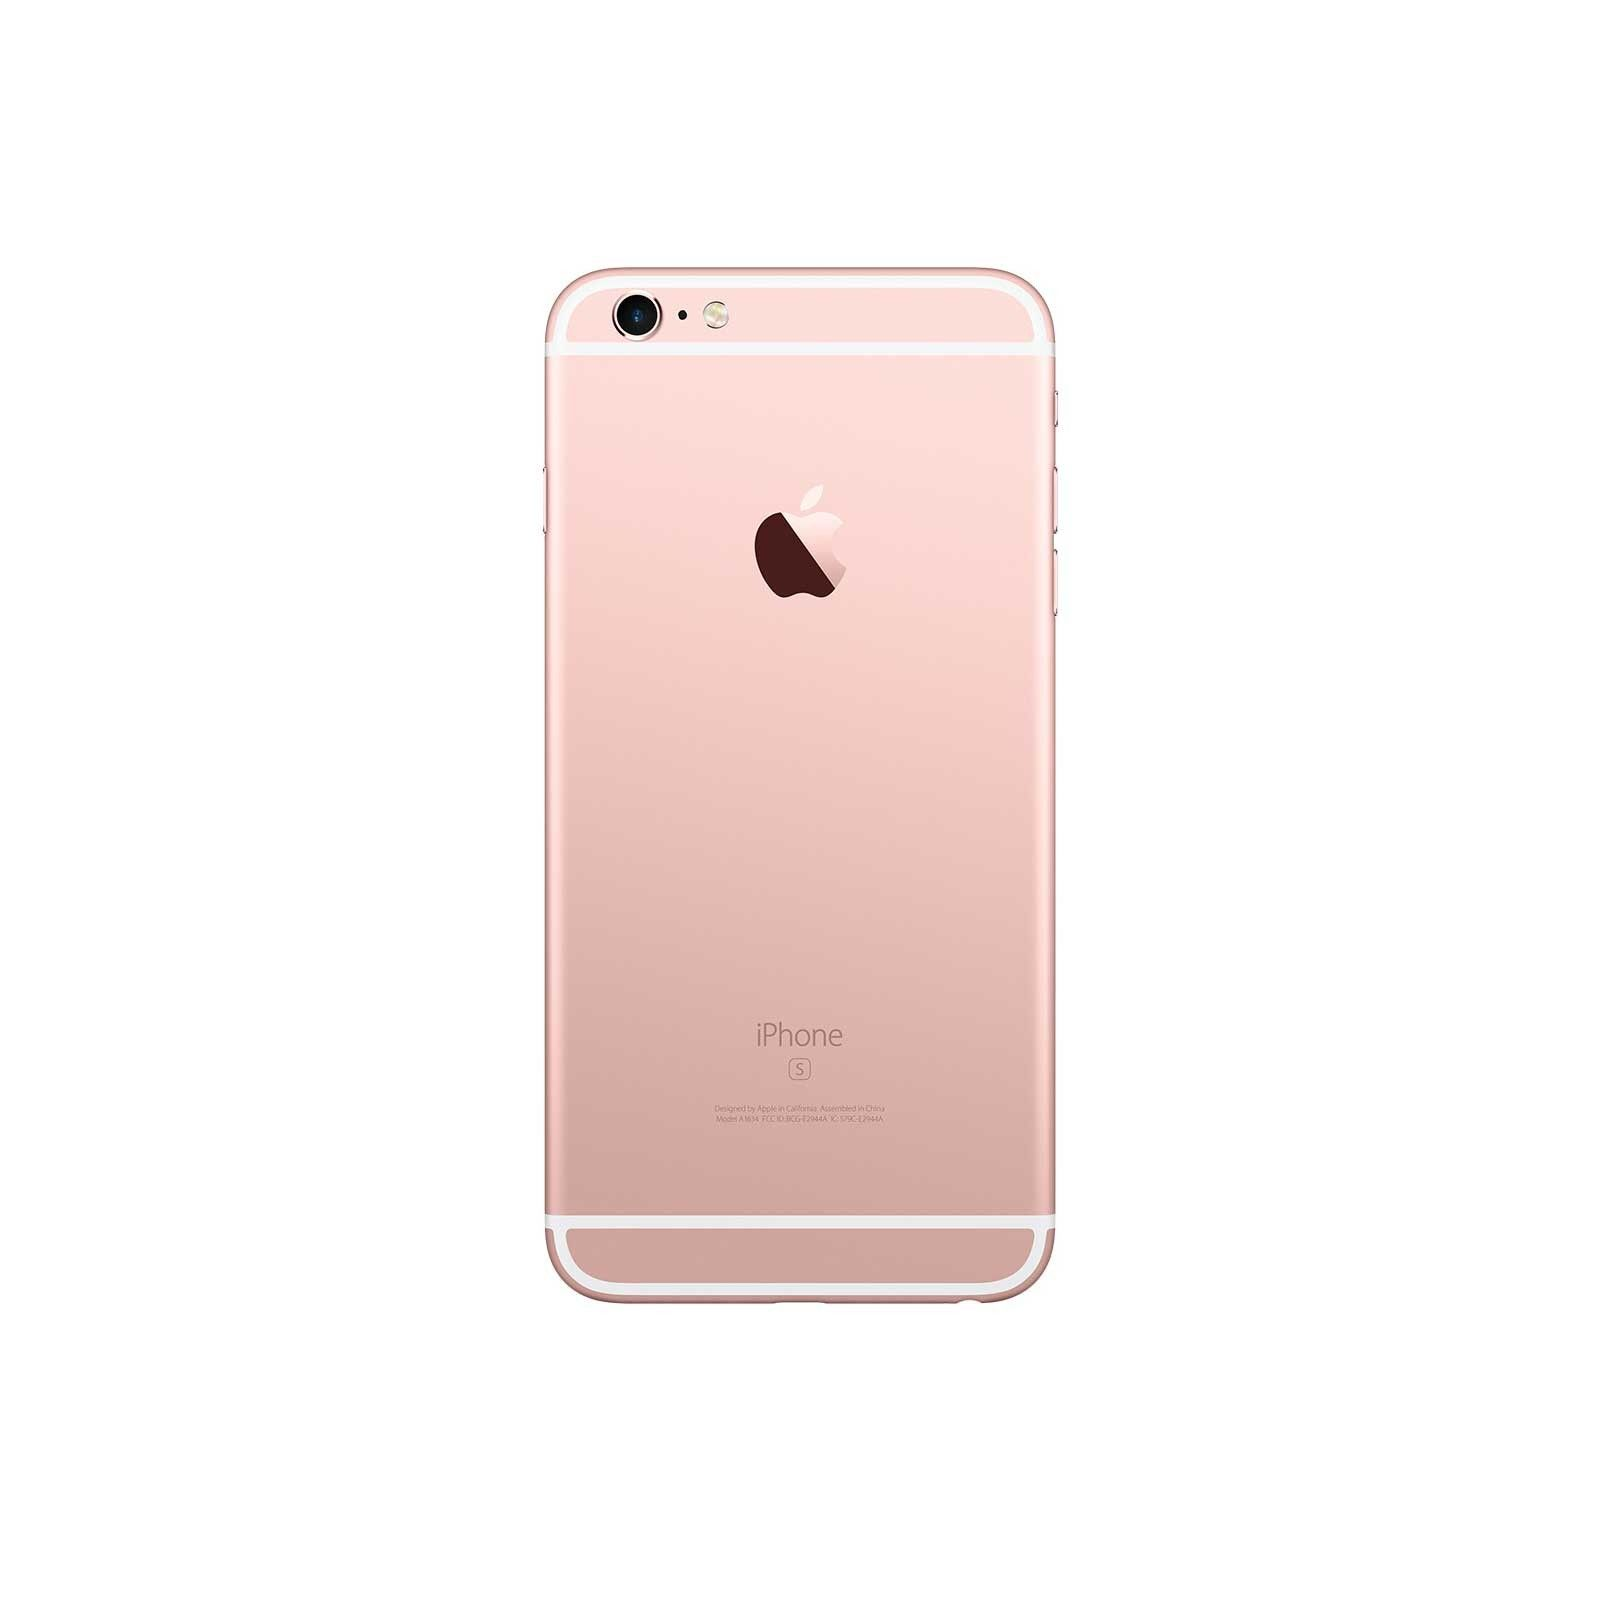 Apple Iphone 6s Plus Gold 64gb Buy Apple 6s Plus 64gb At Best Prices Online From Placewell Retail Iphone Apple Iphone 6s Plus Iphone 6s